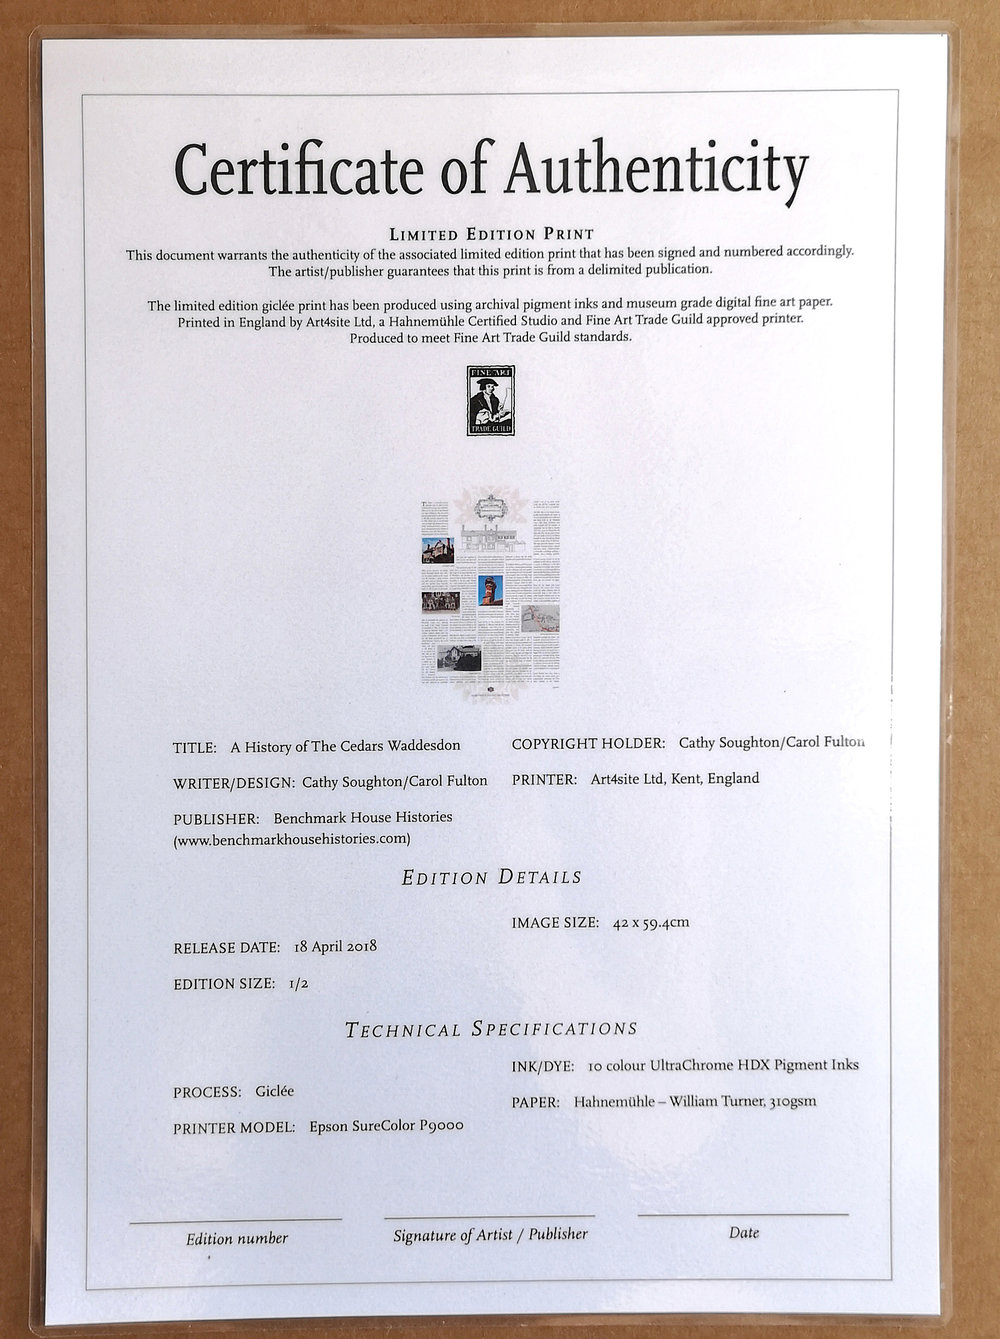 BENCHMARK_HOUSE_HISTORIES_Carol_Fulton_20180801IMG_20180731_Certificate_of_Authenticity.jpg